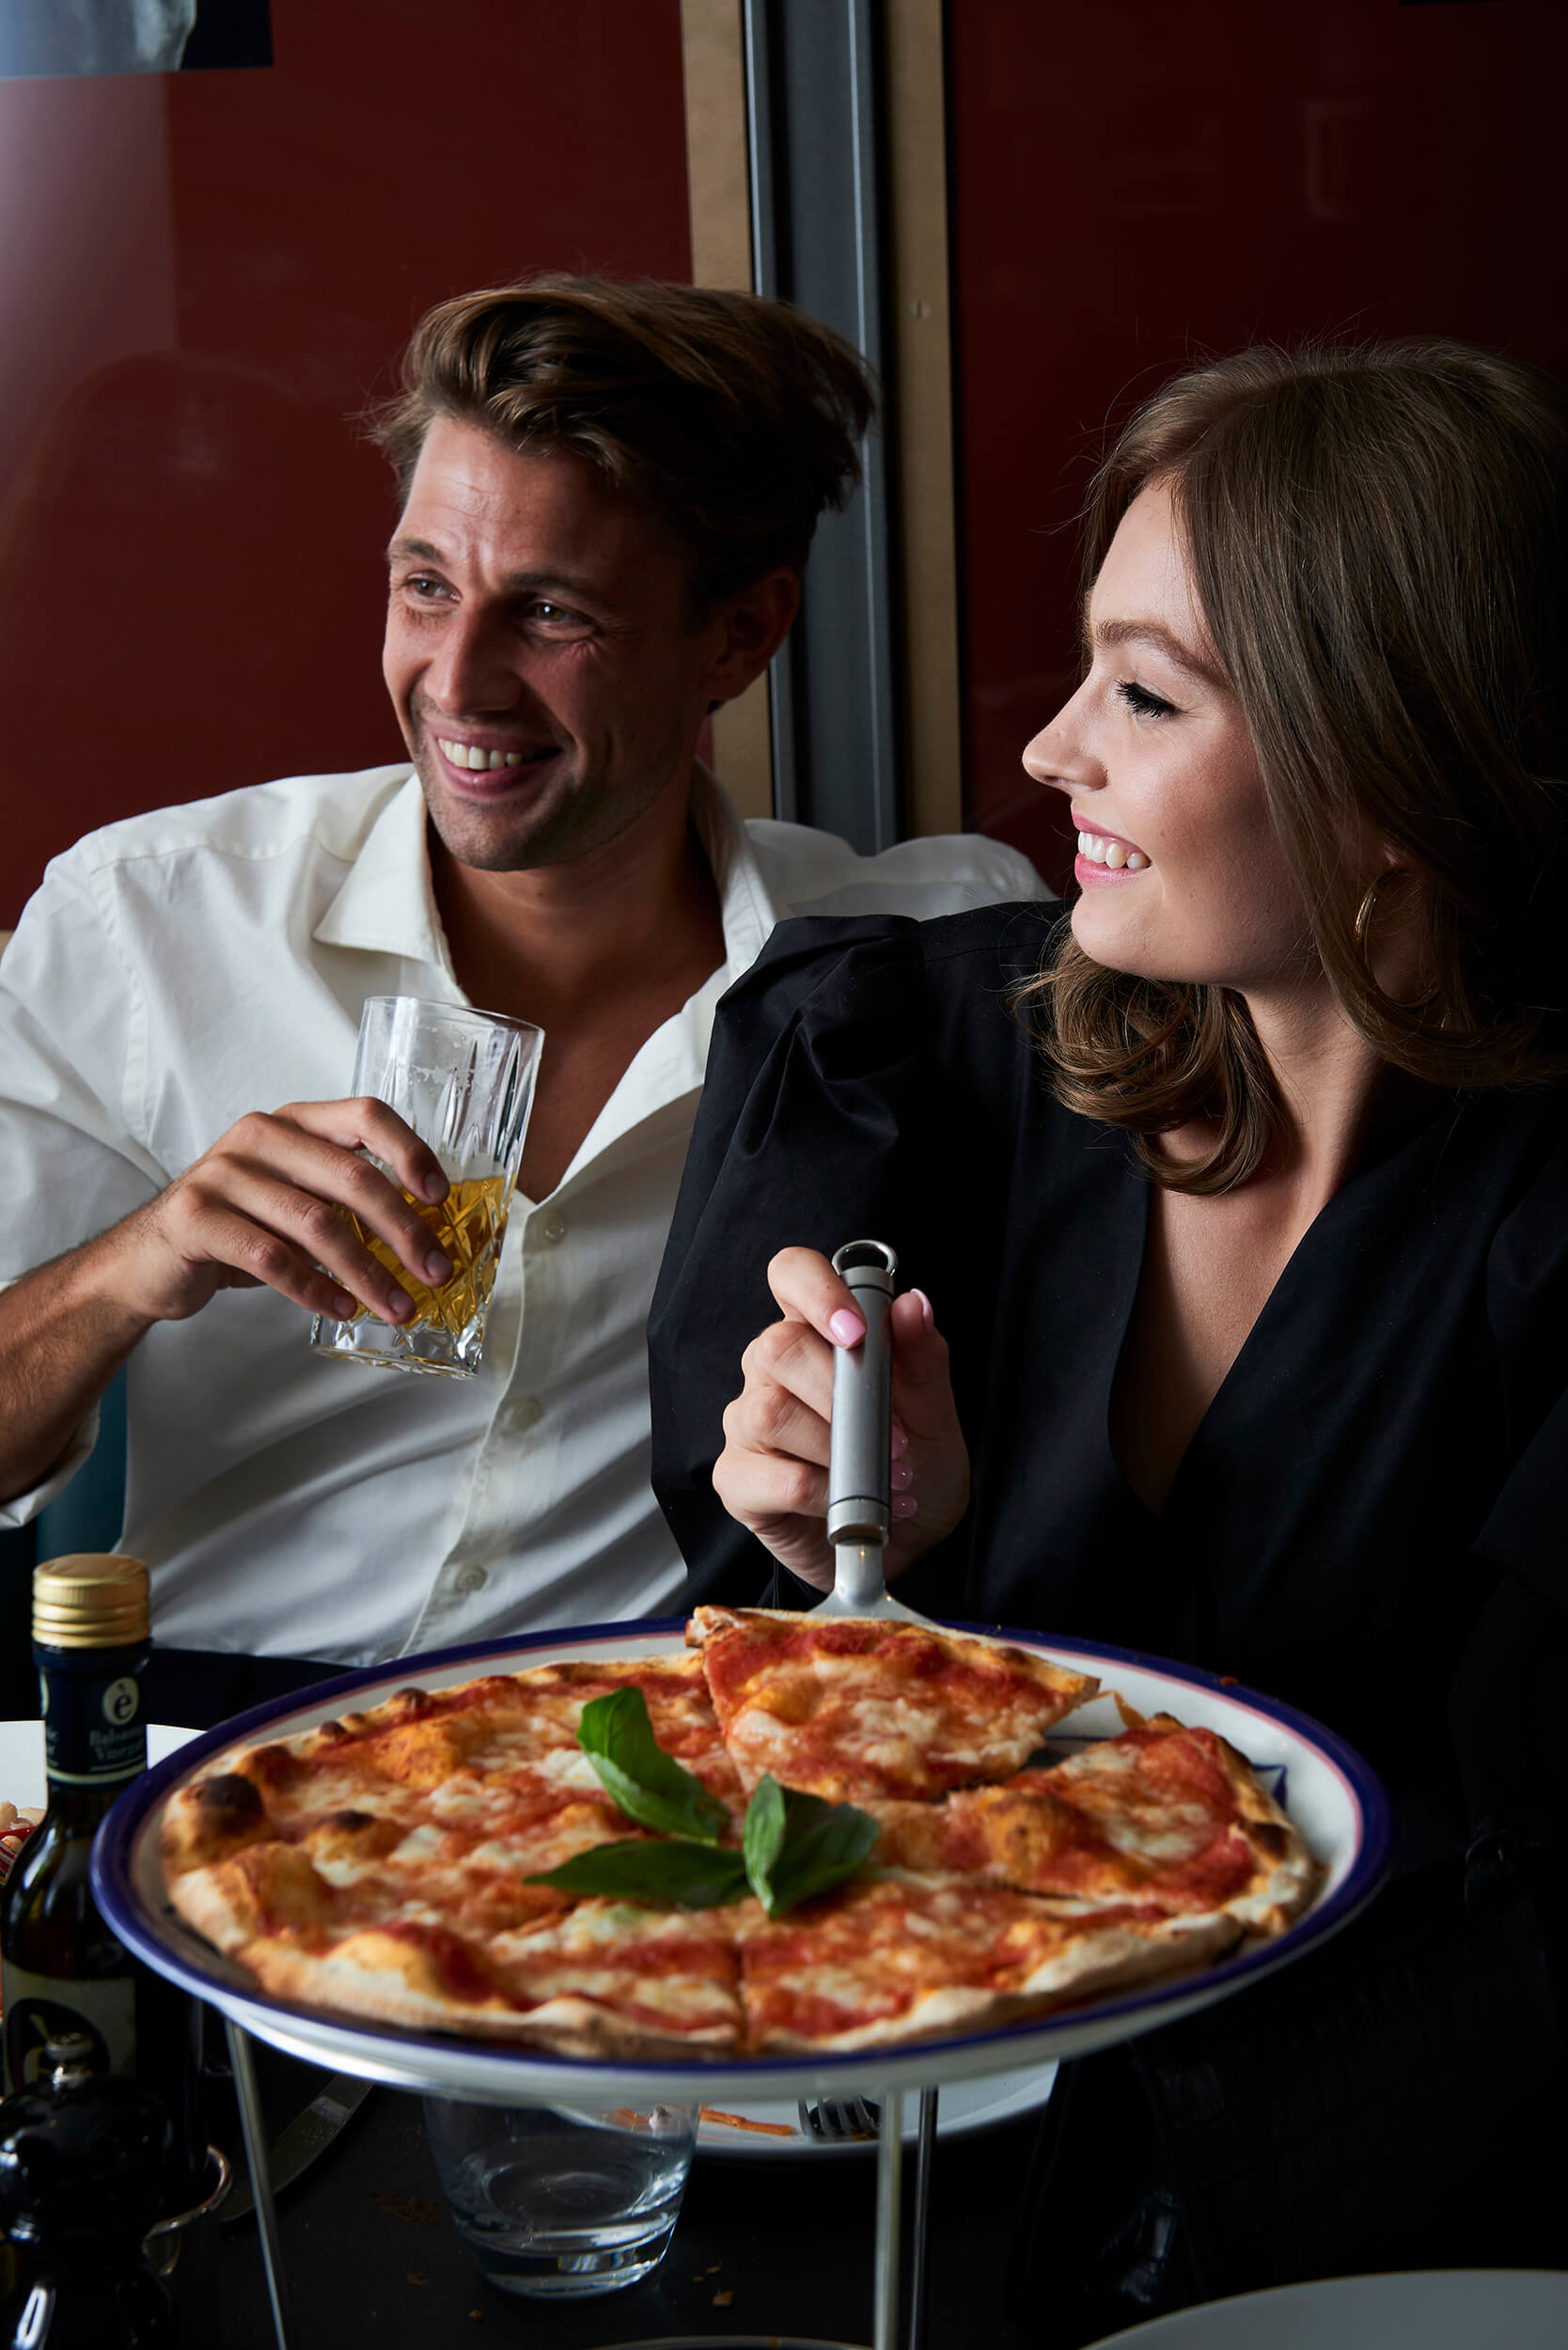 Couple eating pizza and drinking cocktails.